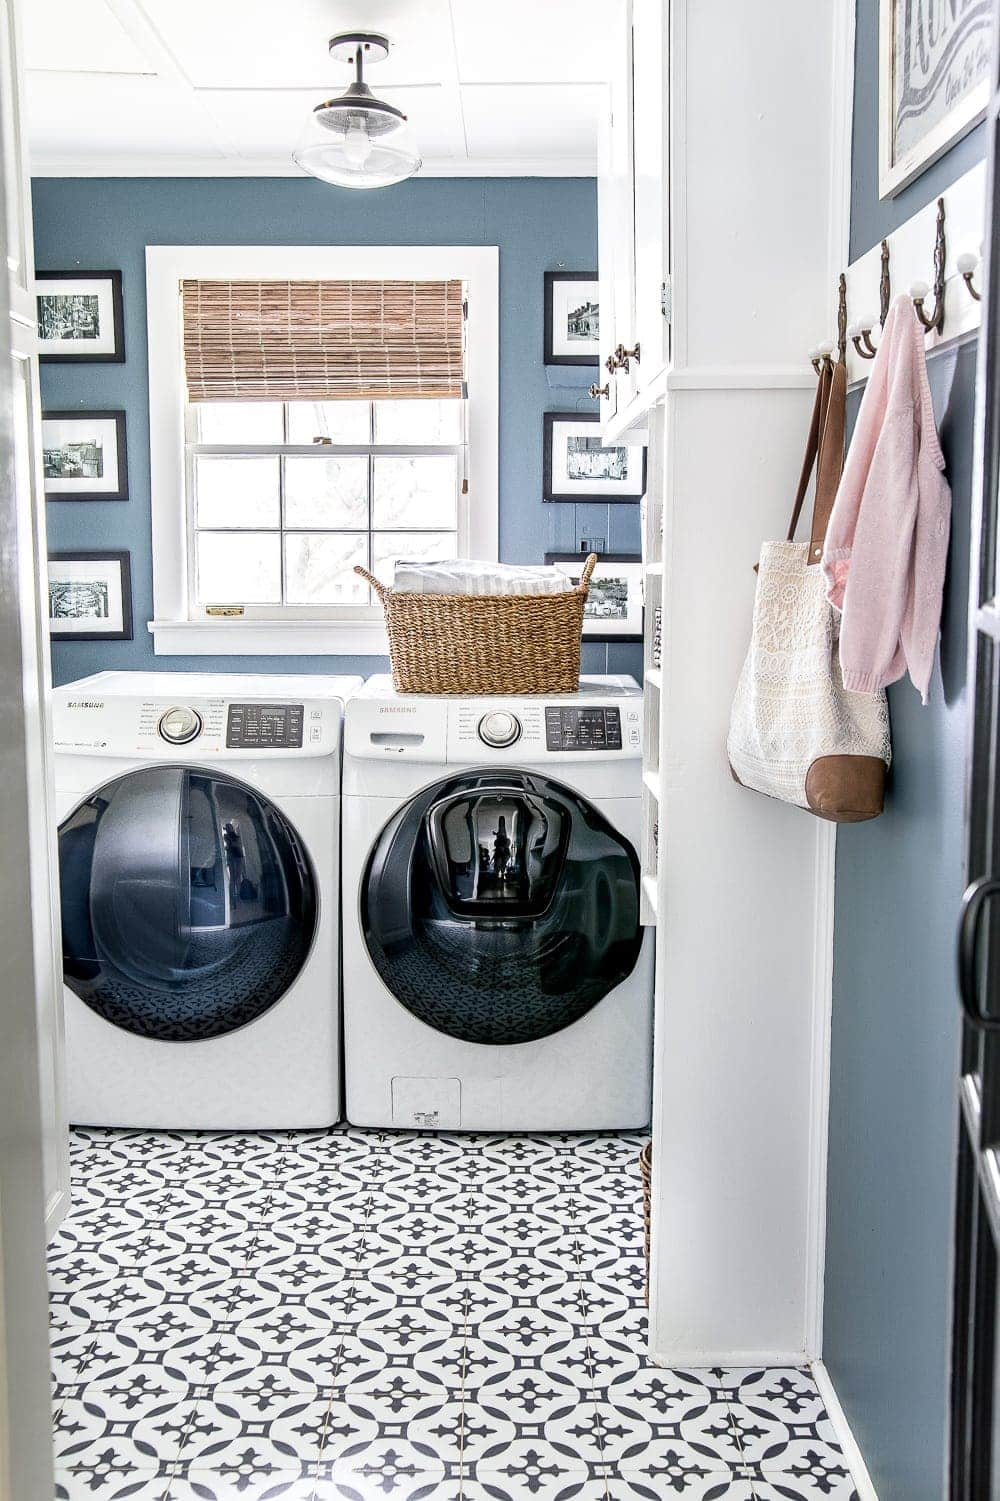 Laundry room color - Sherwin Williams Slate Tile